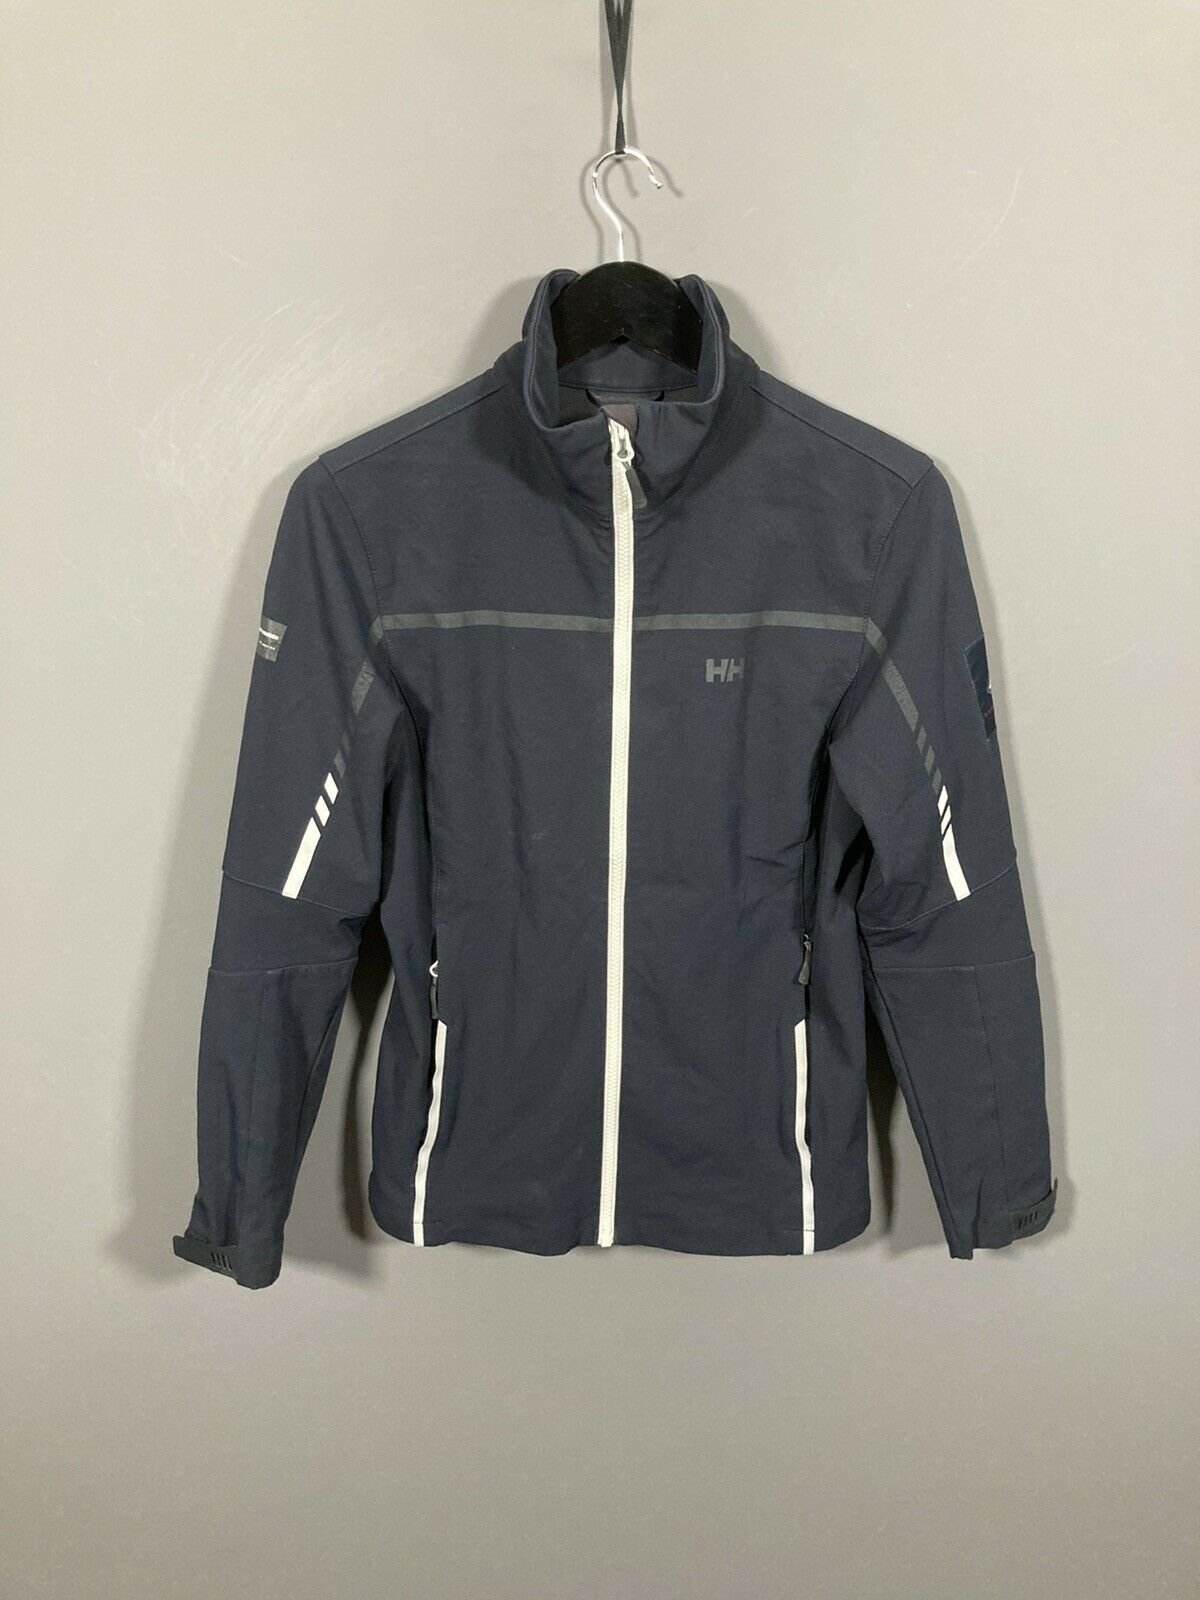 HELLY HANSEN SAILING SOFTSHELL Jacket - M - Navy - Great Condition - Women's